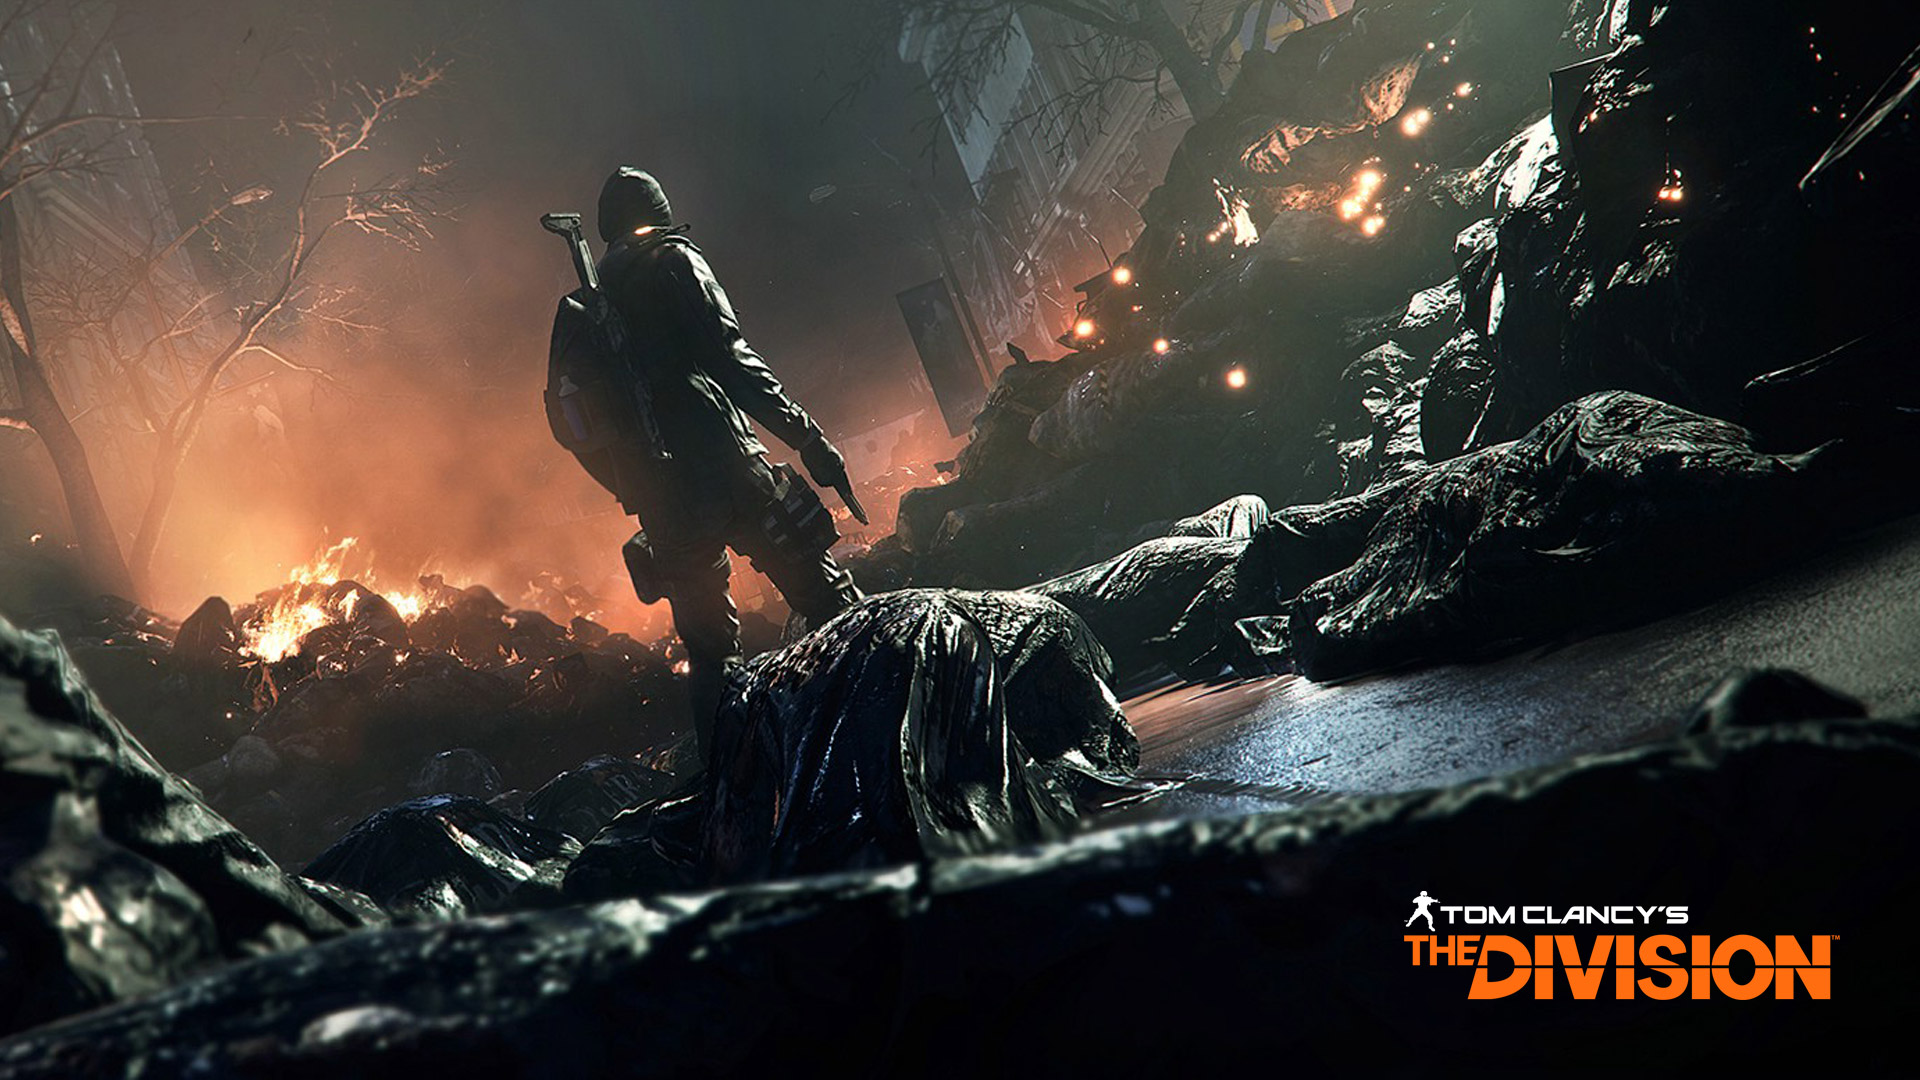 Free The Division Wallpaper in 1920x1080